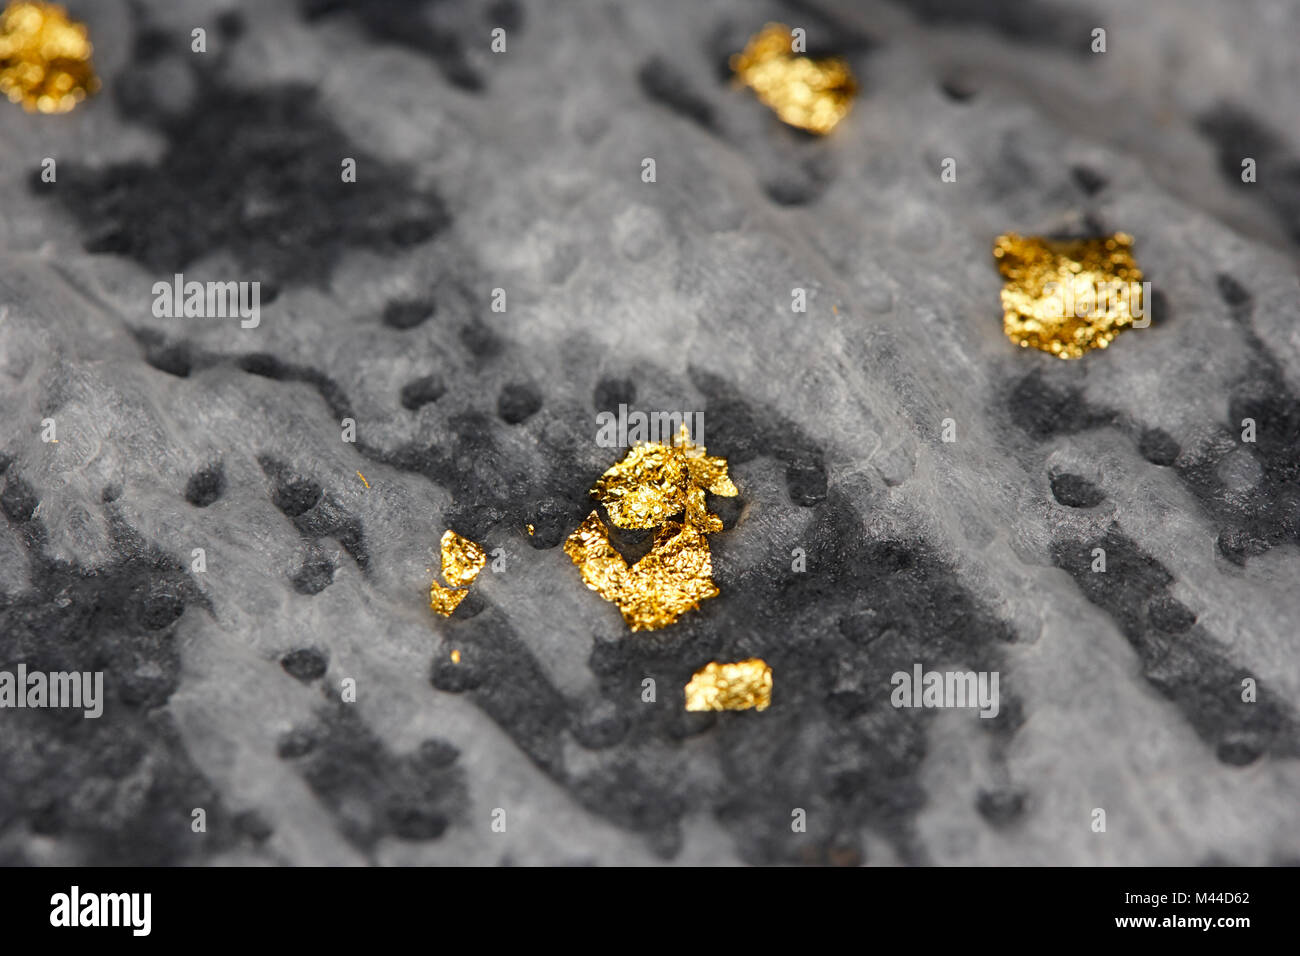 recovering flakes of gold from electrical components - Stock Image